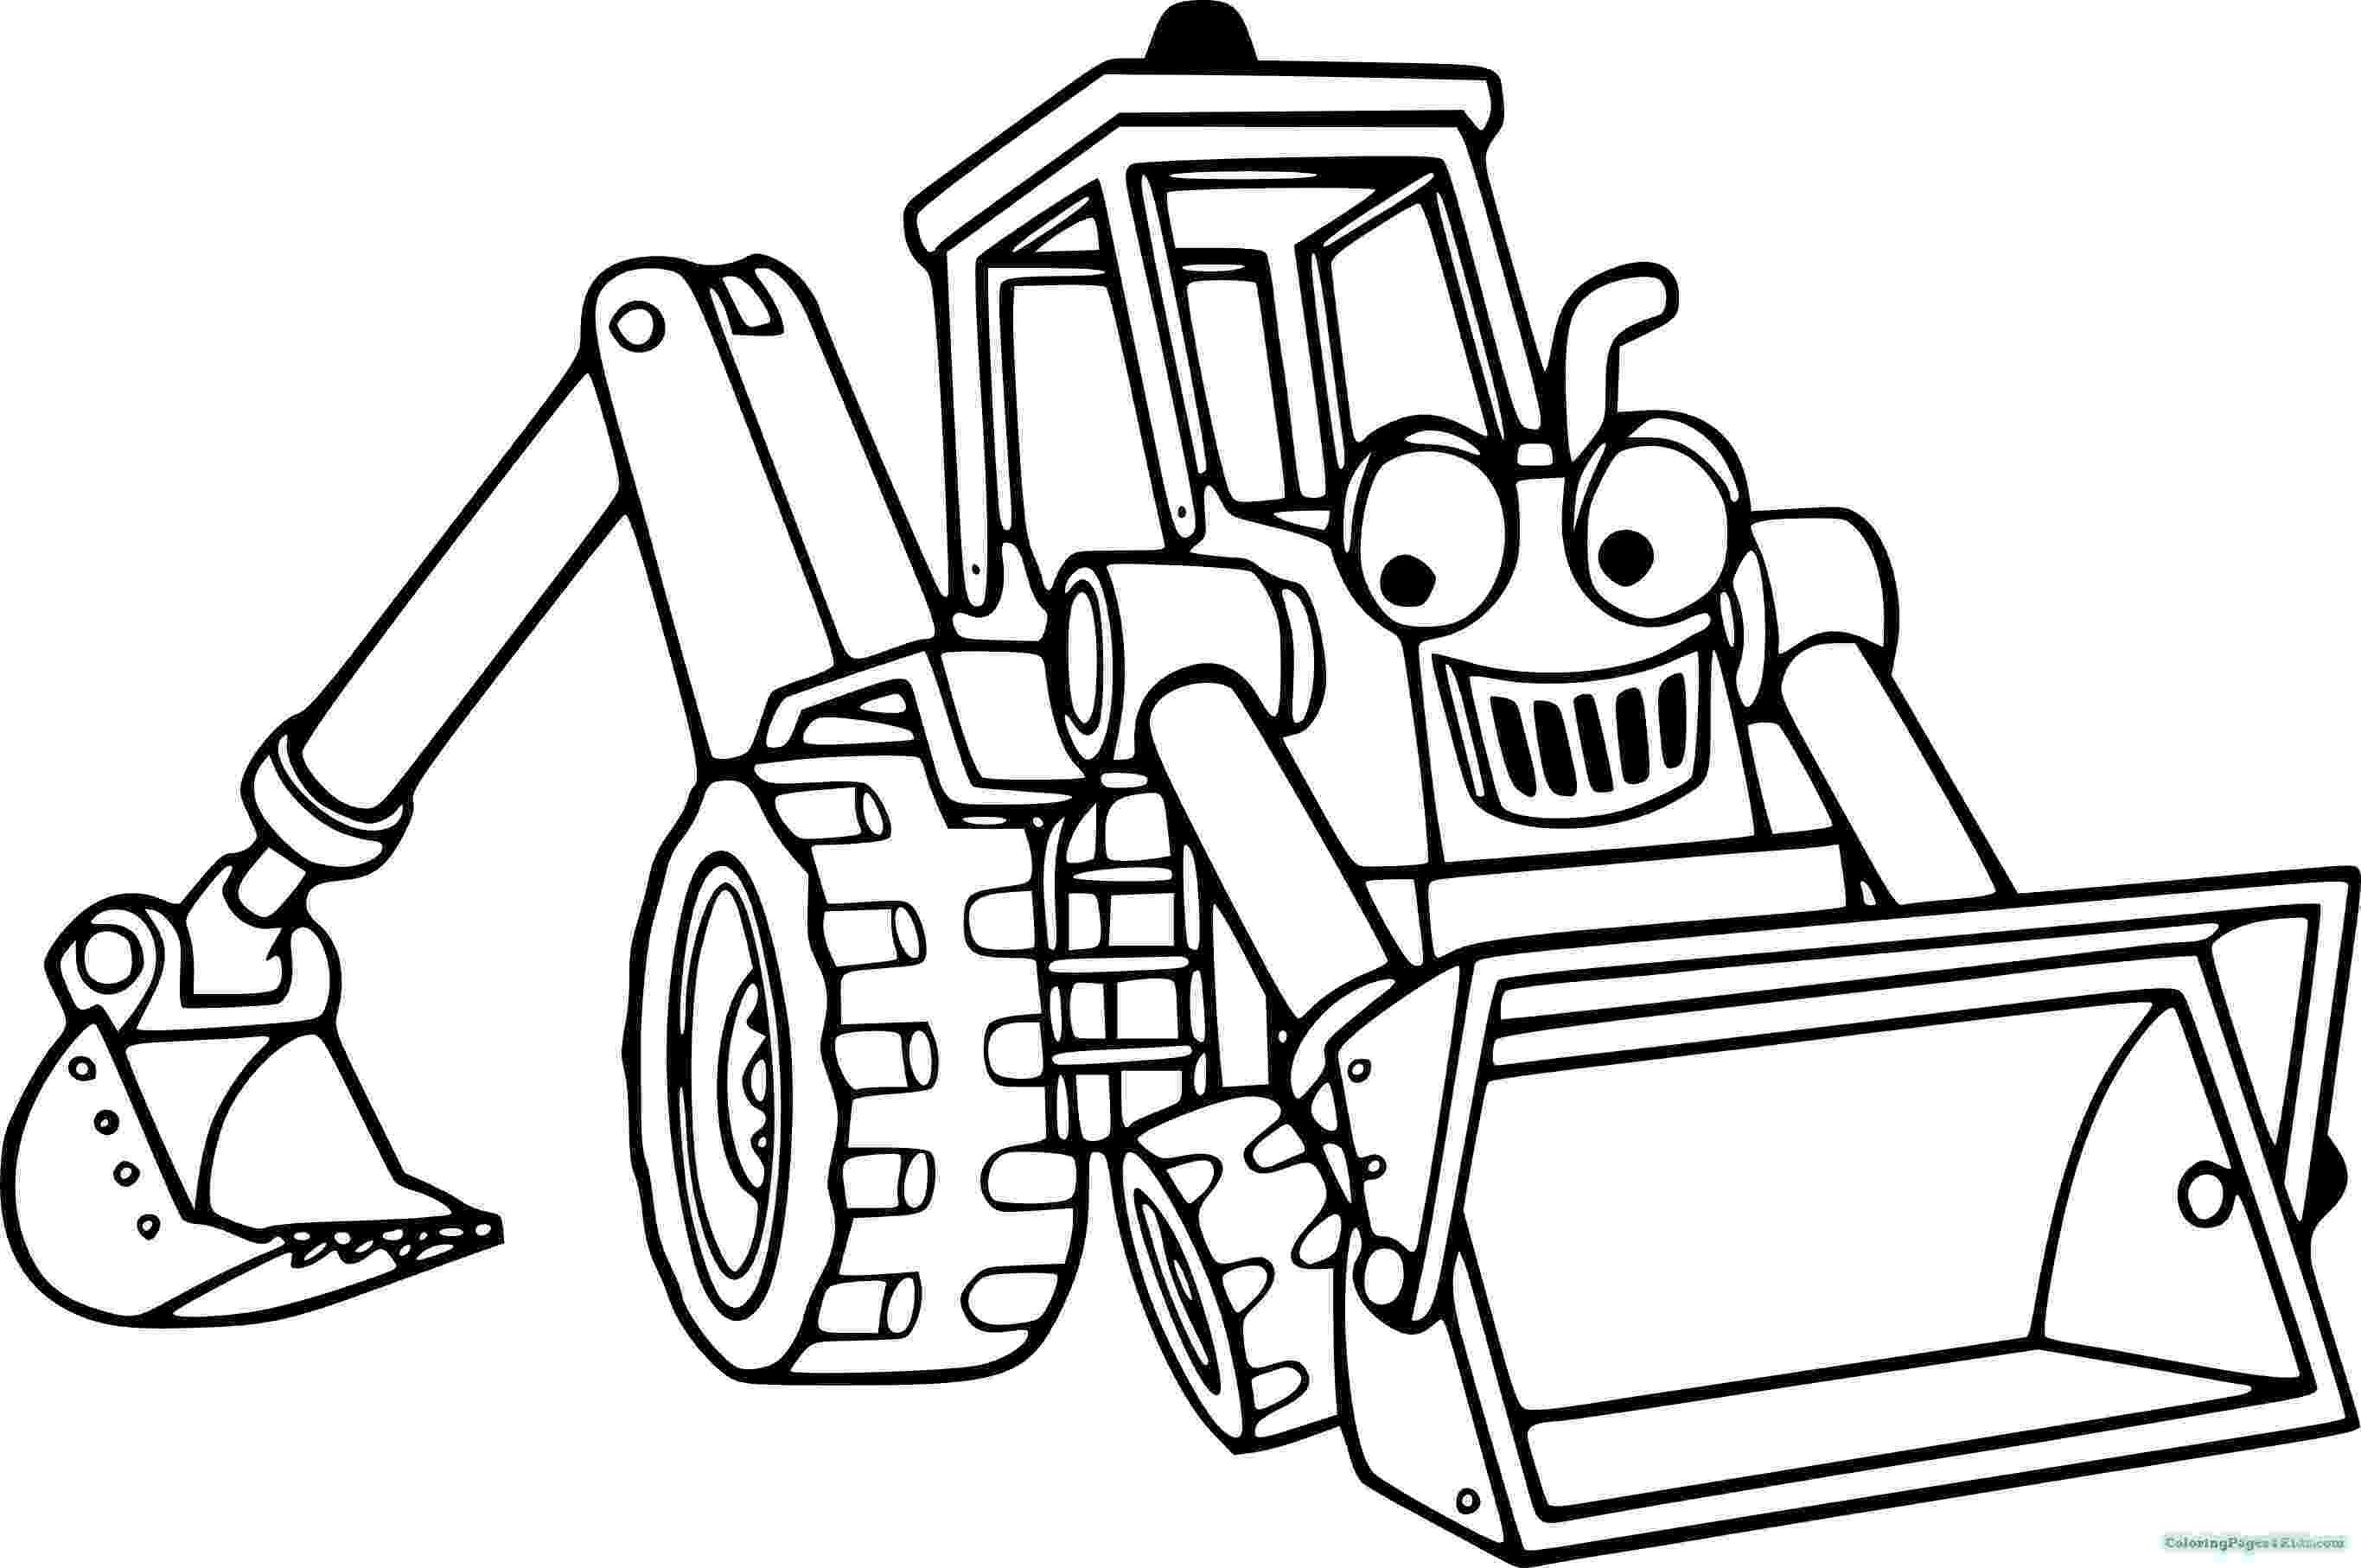 tractor coloring sheet johnny tractor free coloring pages coloring pages for kids sheet coloring tractor